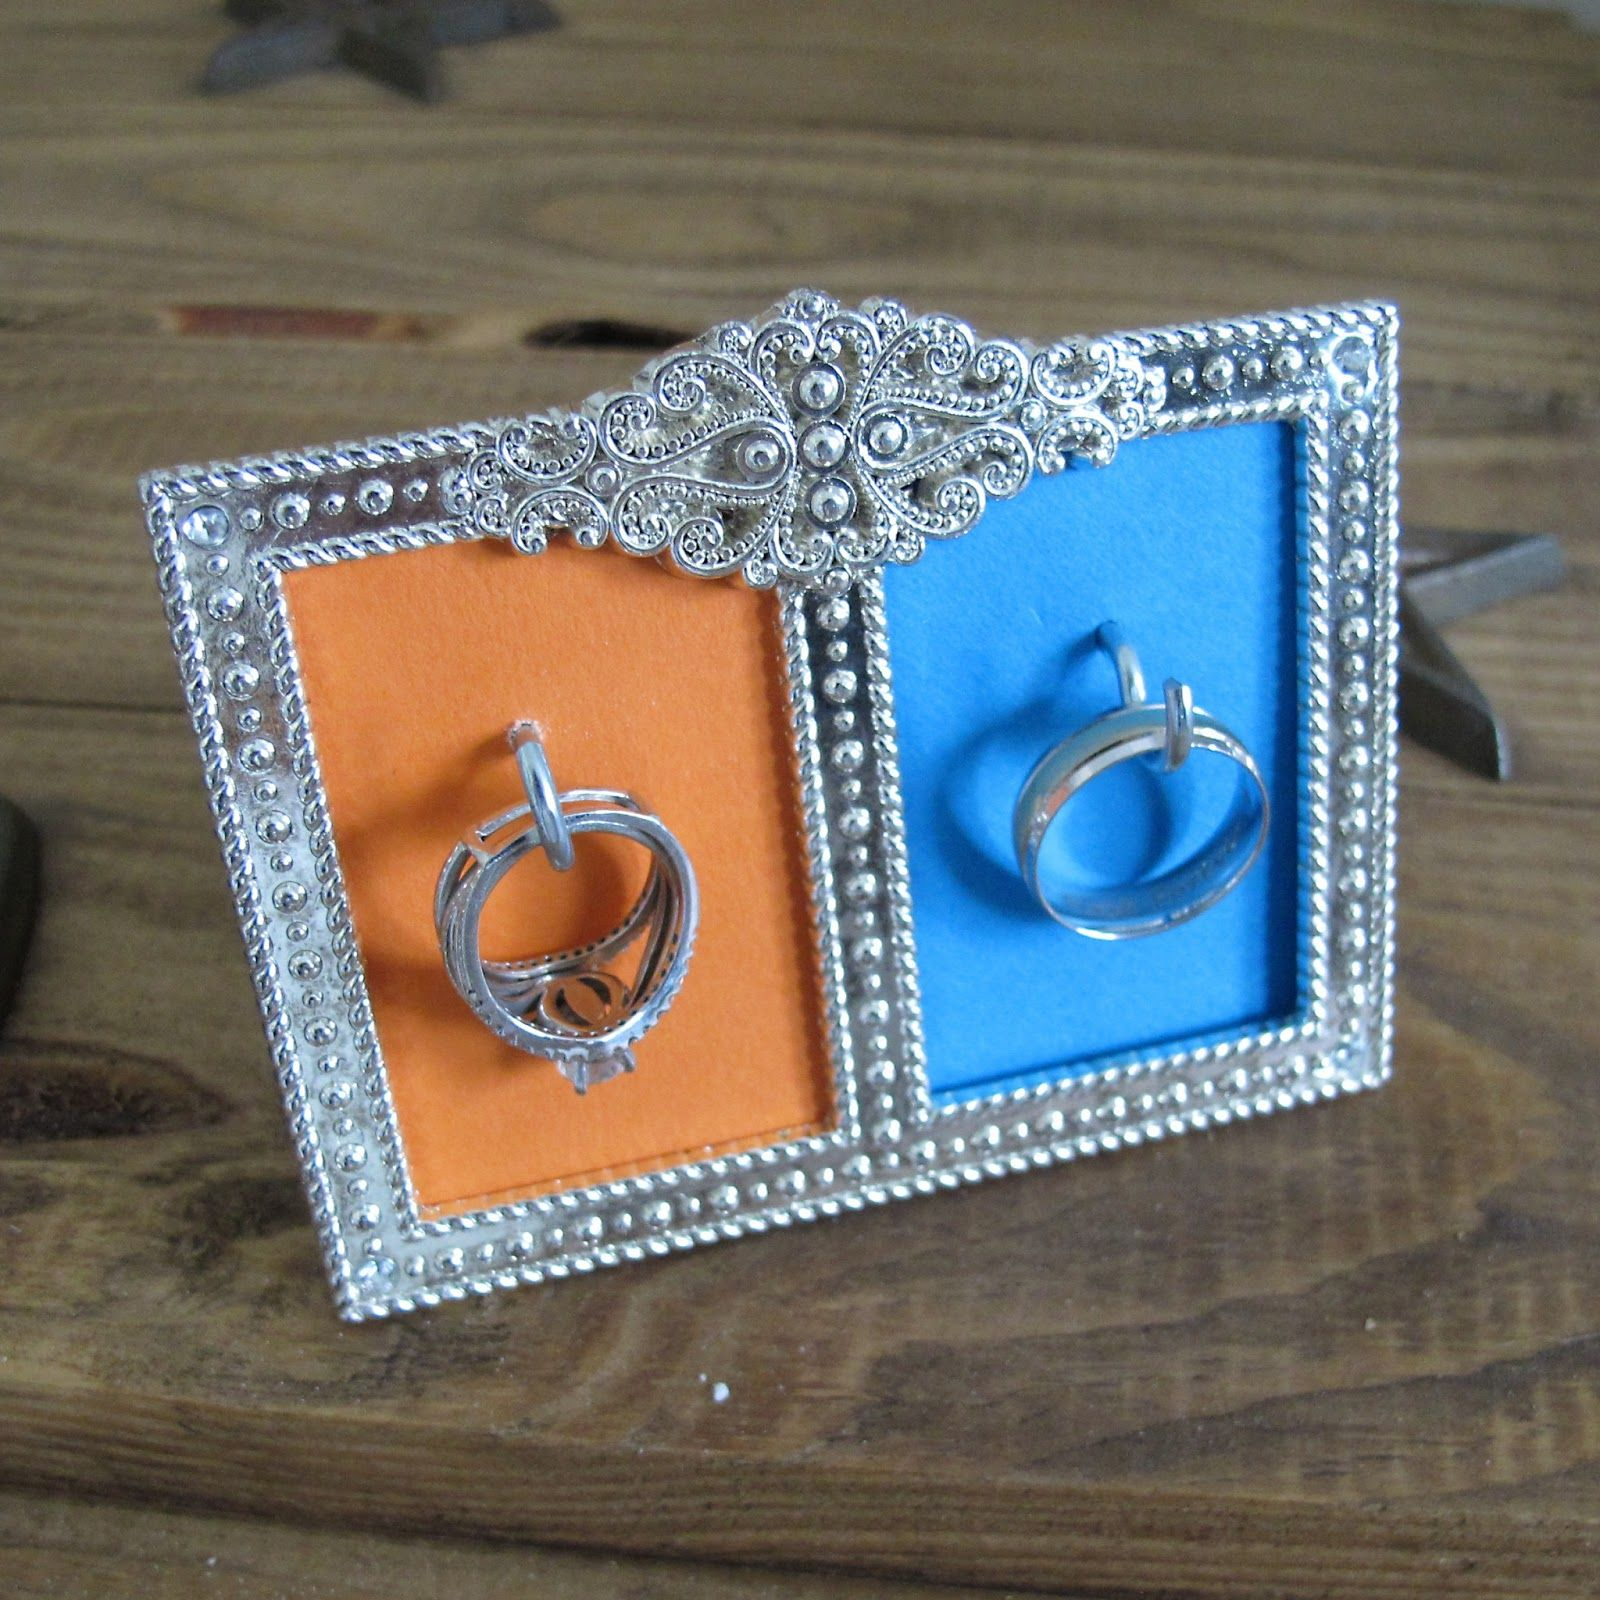 diy wedding ring holder use a small frame and some hooks to create your own - Wedding Ring Holder